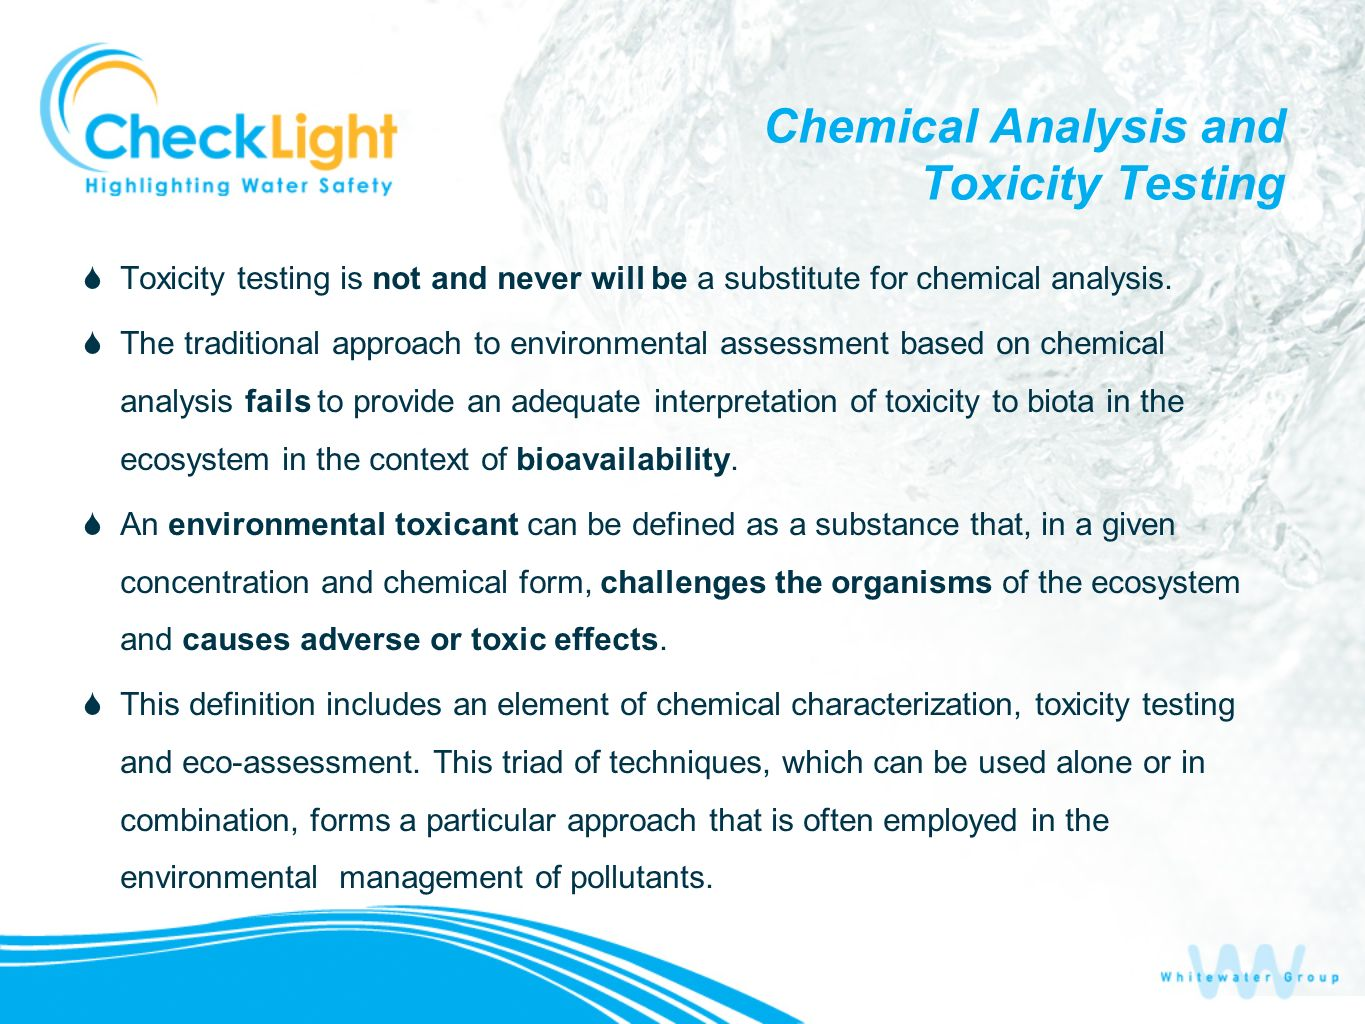 Chemical Analysis and Toxicity Testing